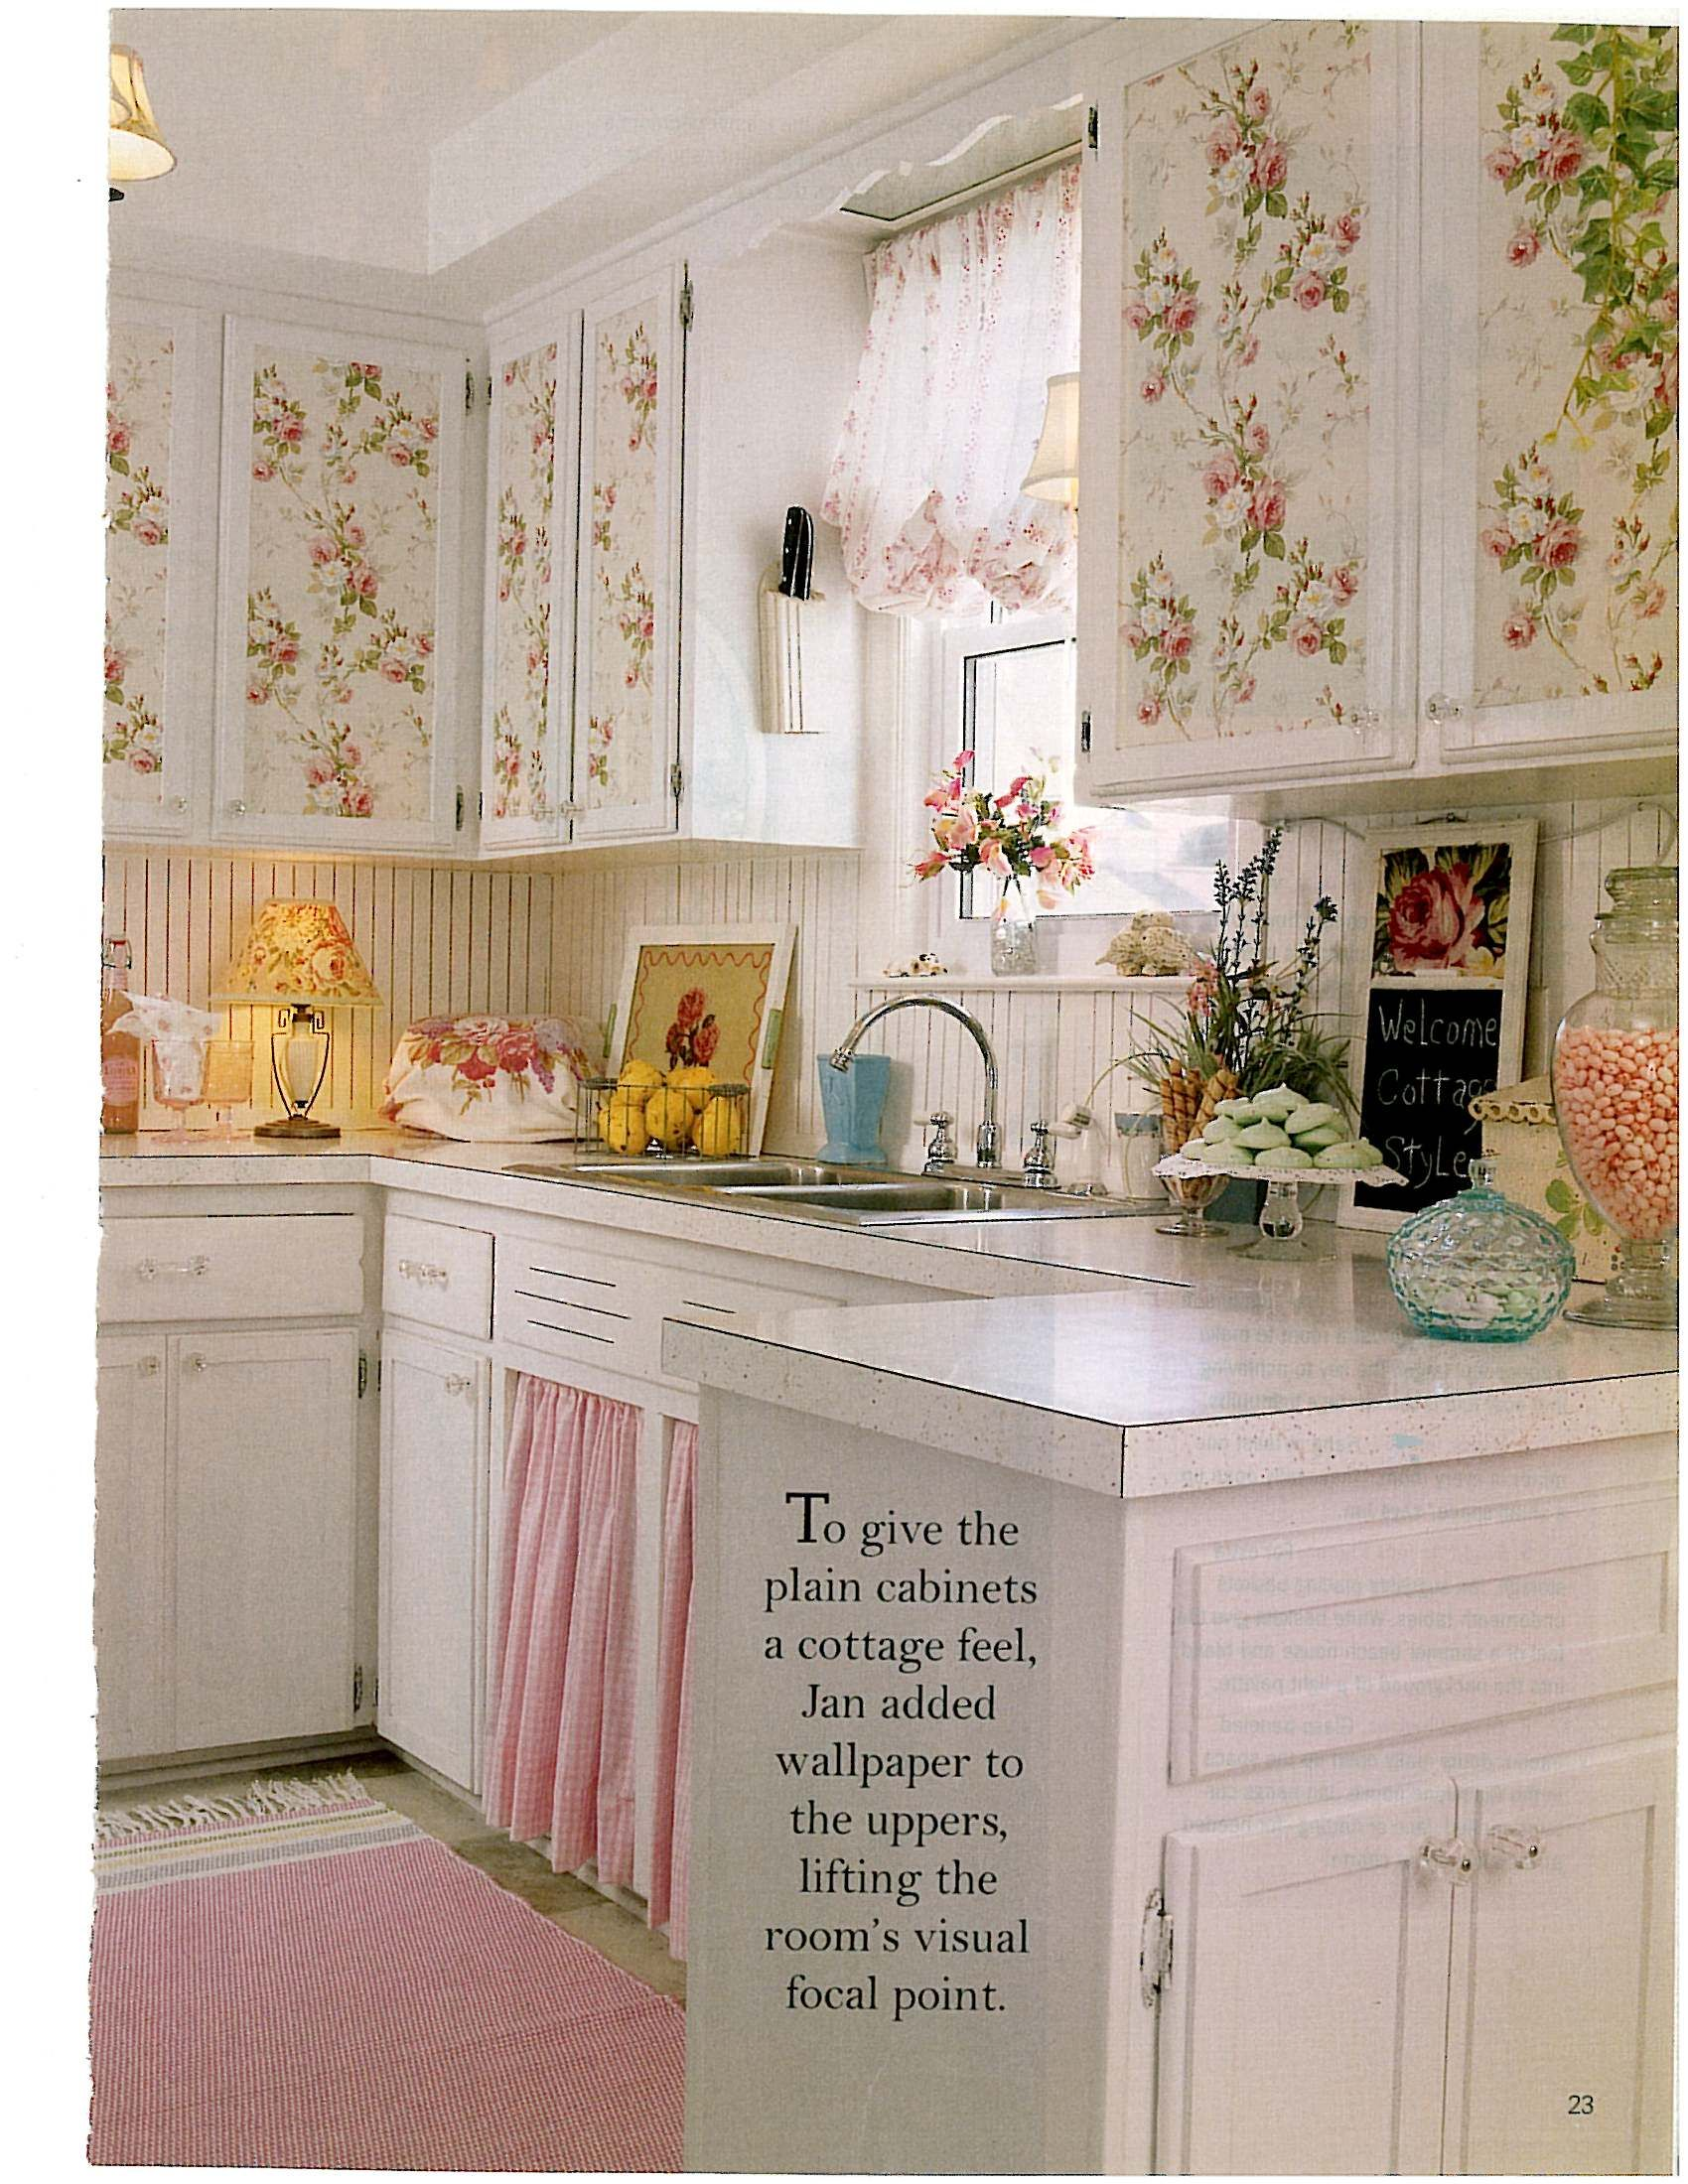 Floral Wallpaper With Roses On Cupboards, Attractive Displays On Counter  And Under Sink Curtain~